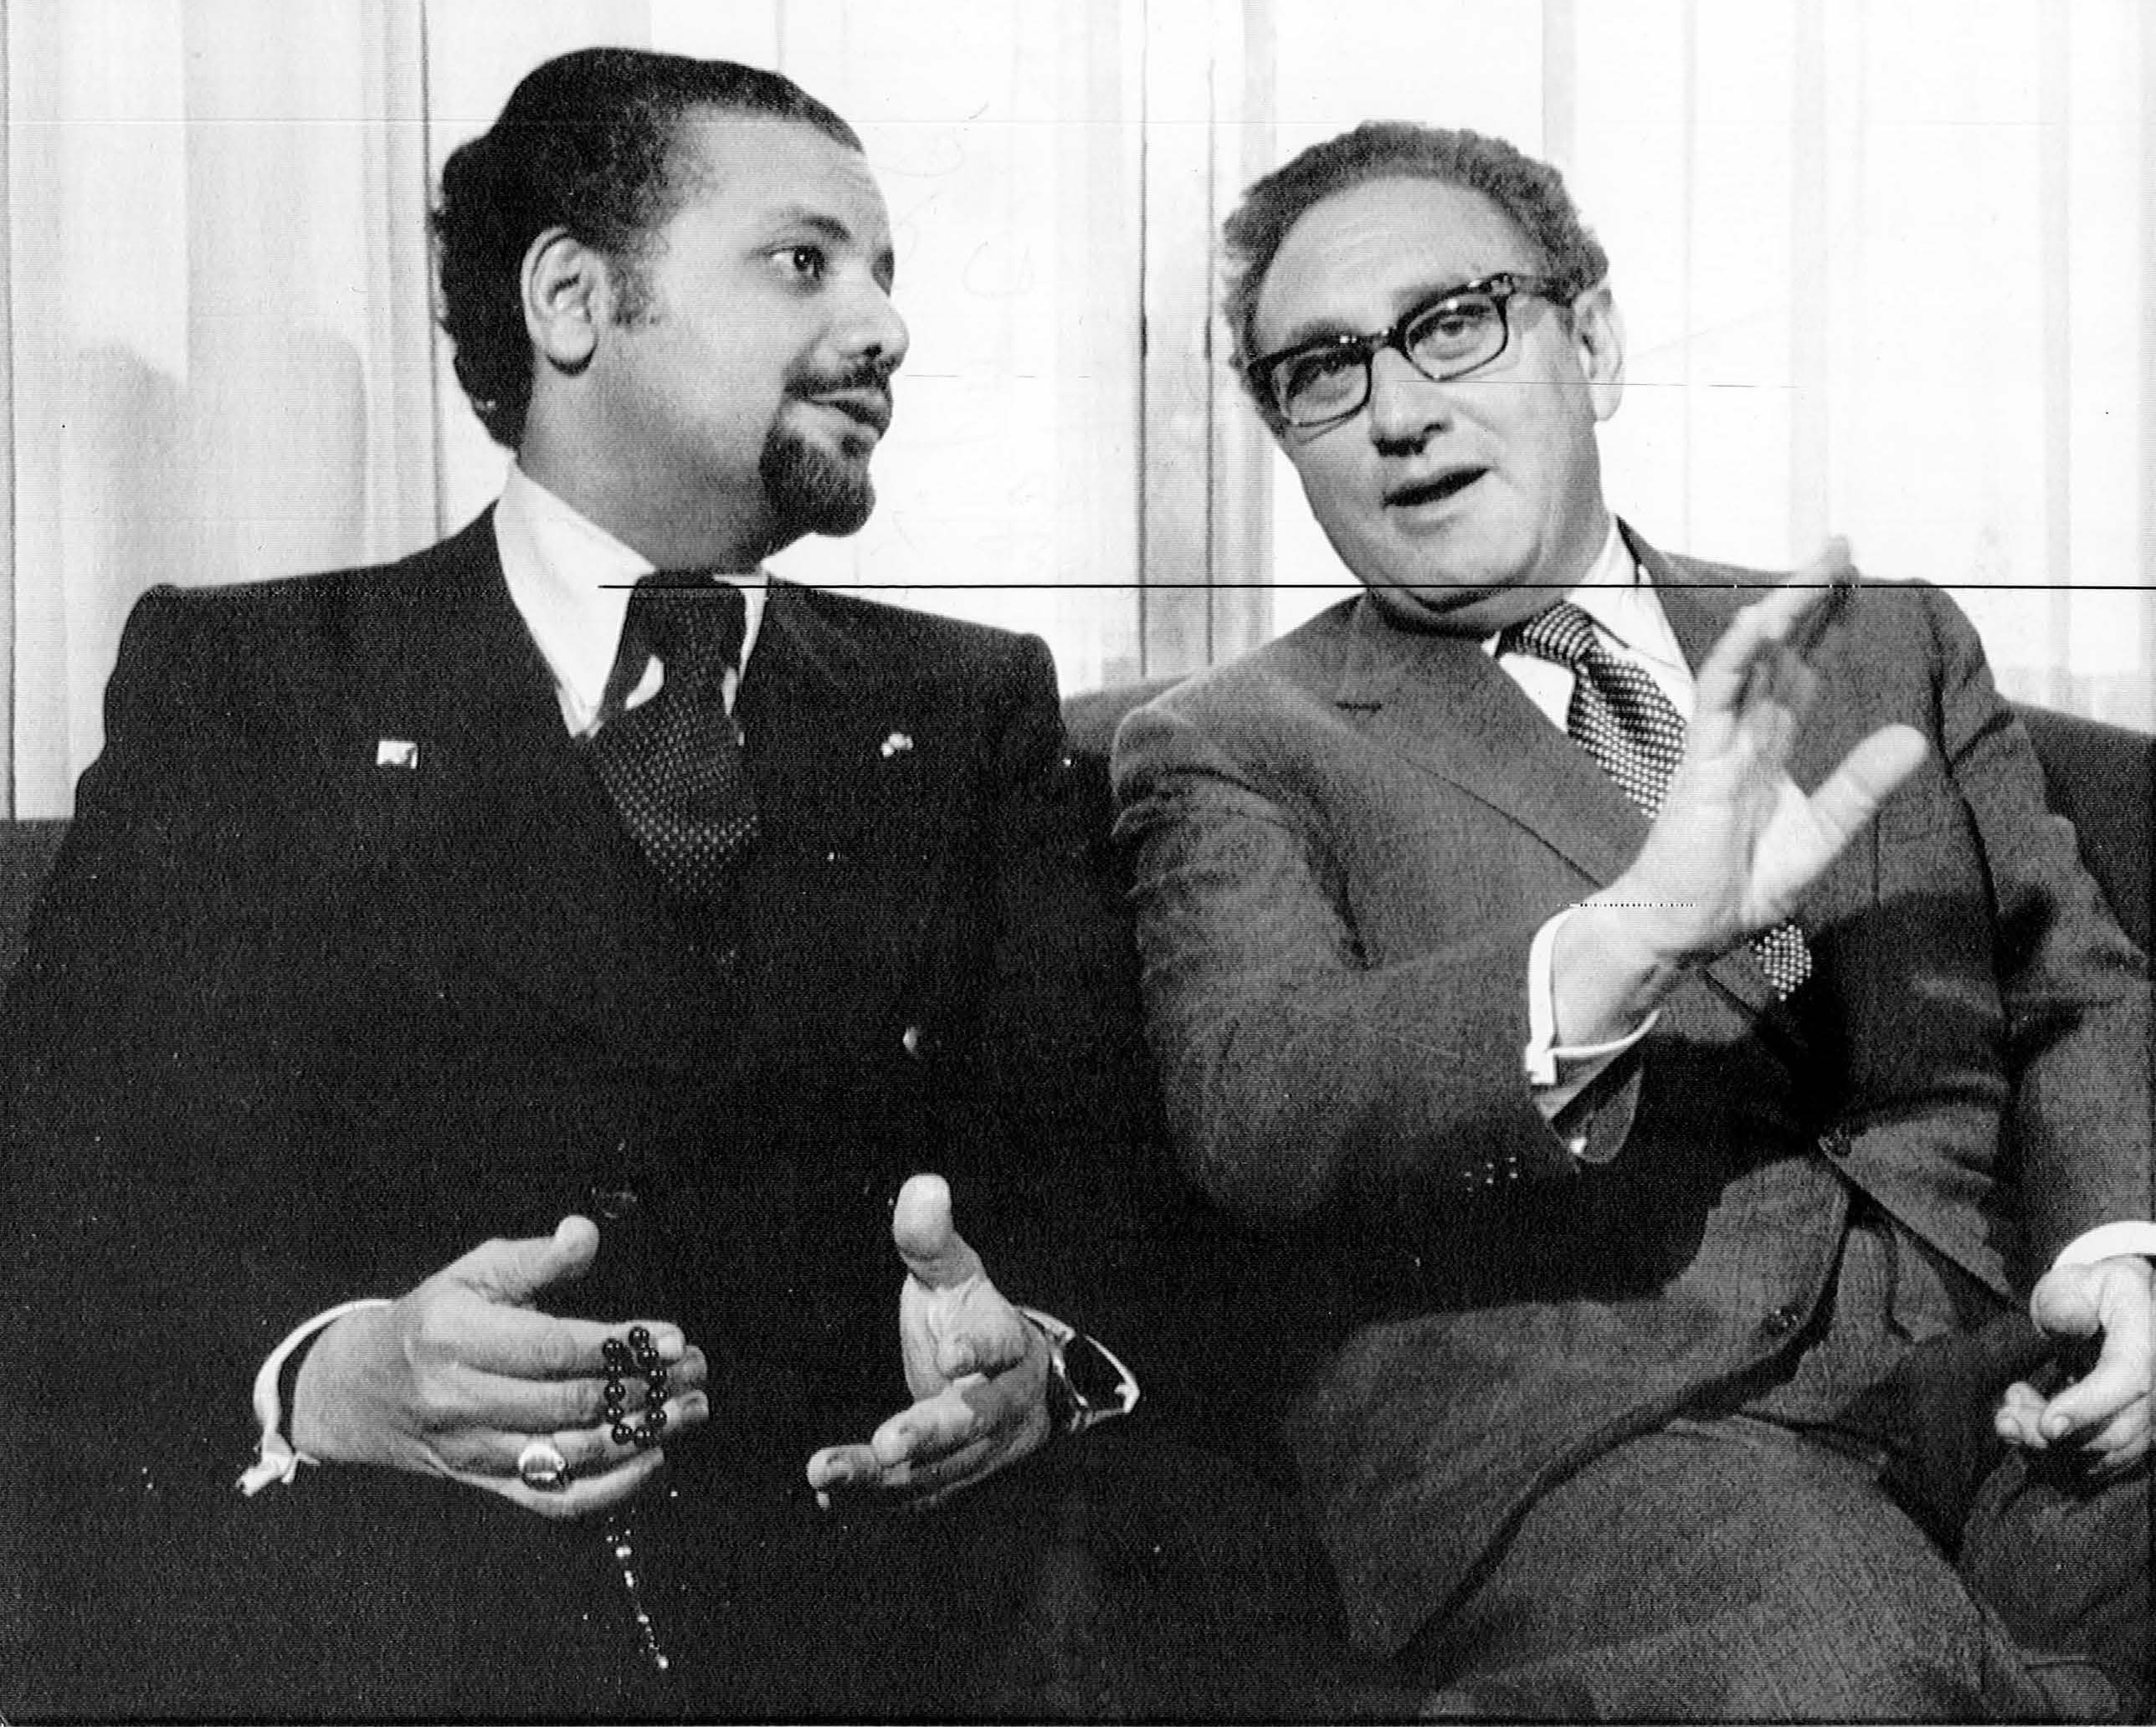 Henry A. Kissinger. (Dec. 05, 1973). MEET FOR TALKS with Saudi Arabia's oil minister Ahmed Zaki Yamani at the State Department. AP Wirephoto.